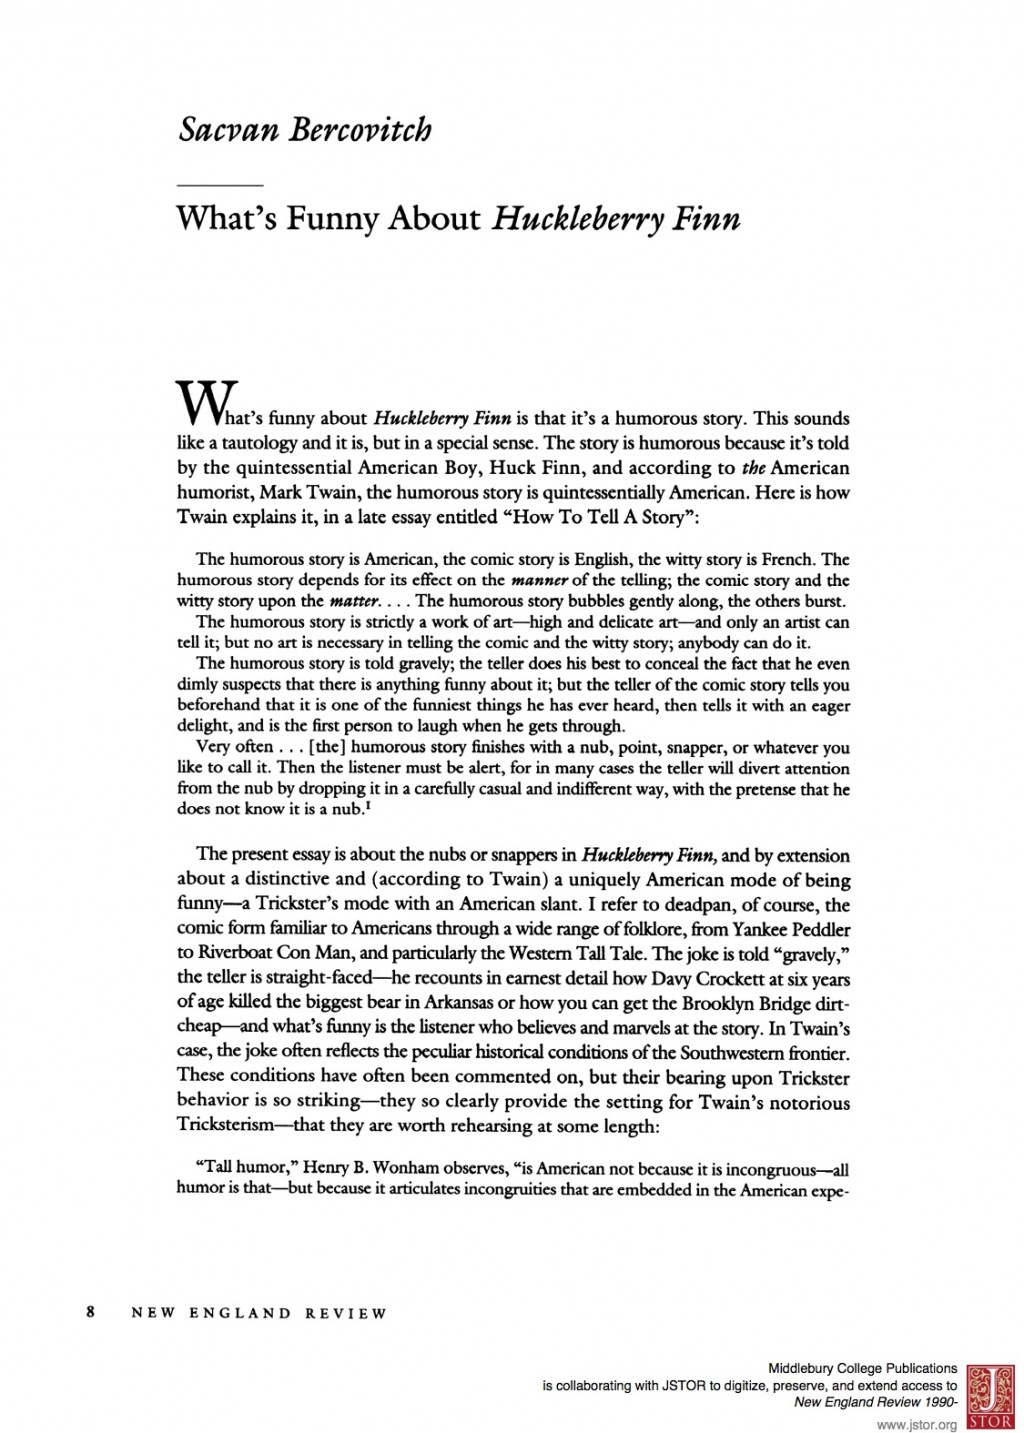 001 Huckleberry Finn Essay Example Phenomenal Morality Huck Discussion Questions Chapters 1-5 Large